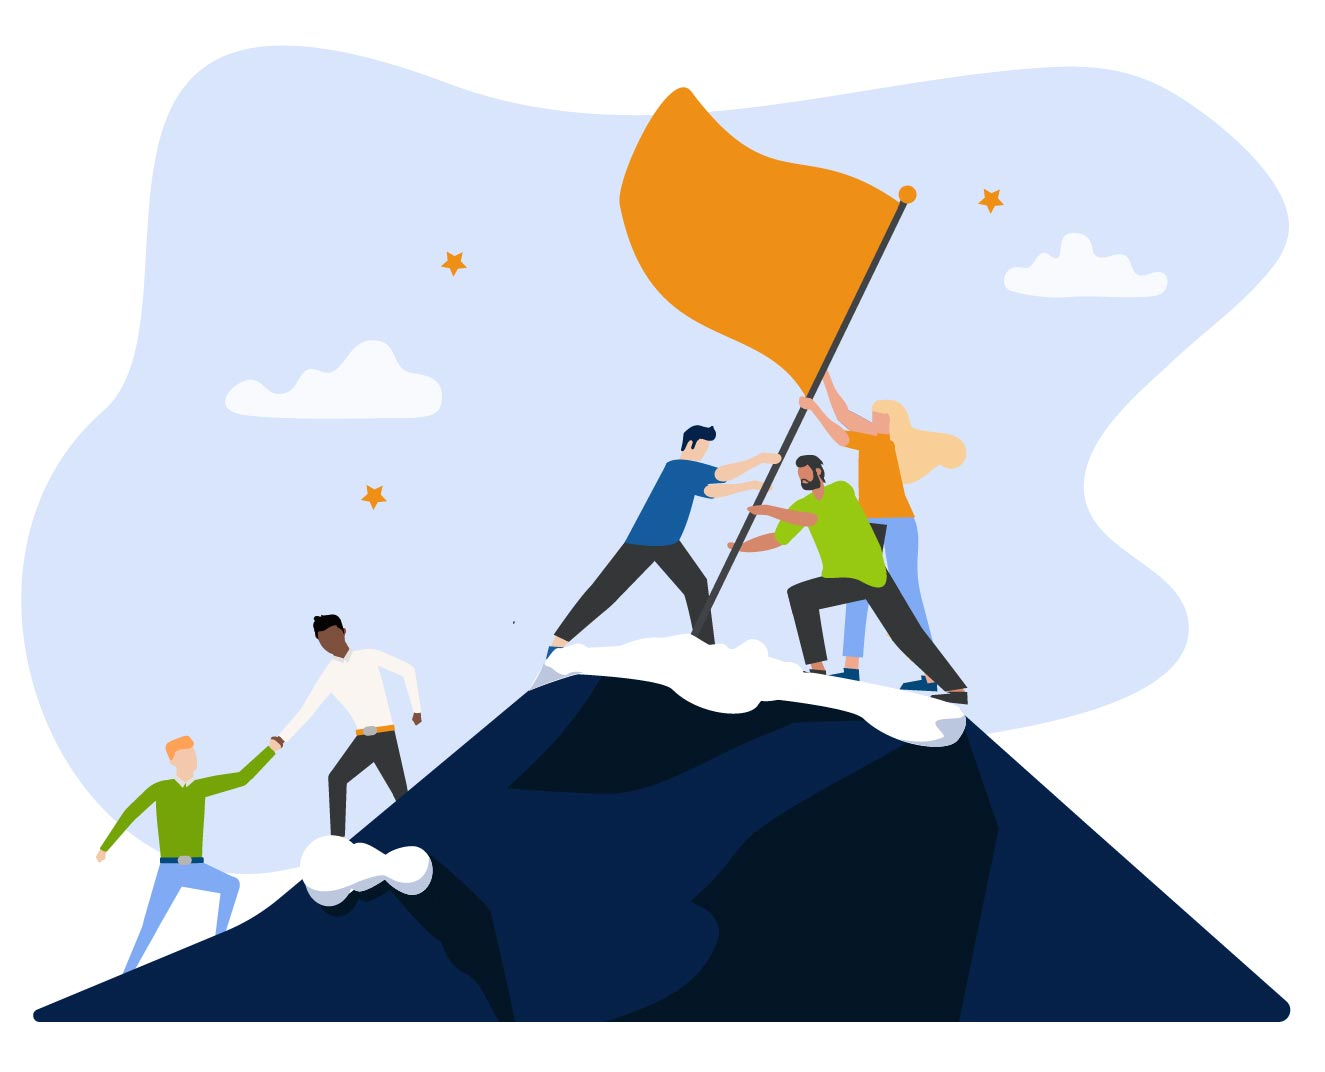 Business people helping eachother get to top of mountain